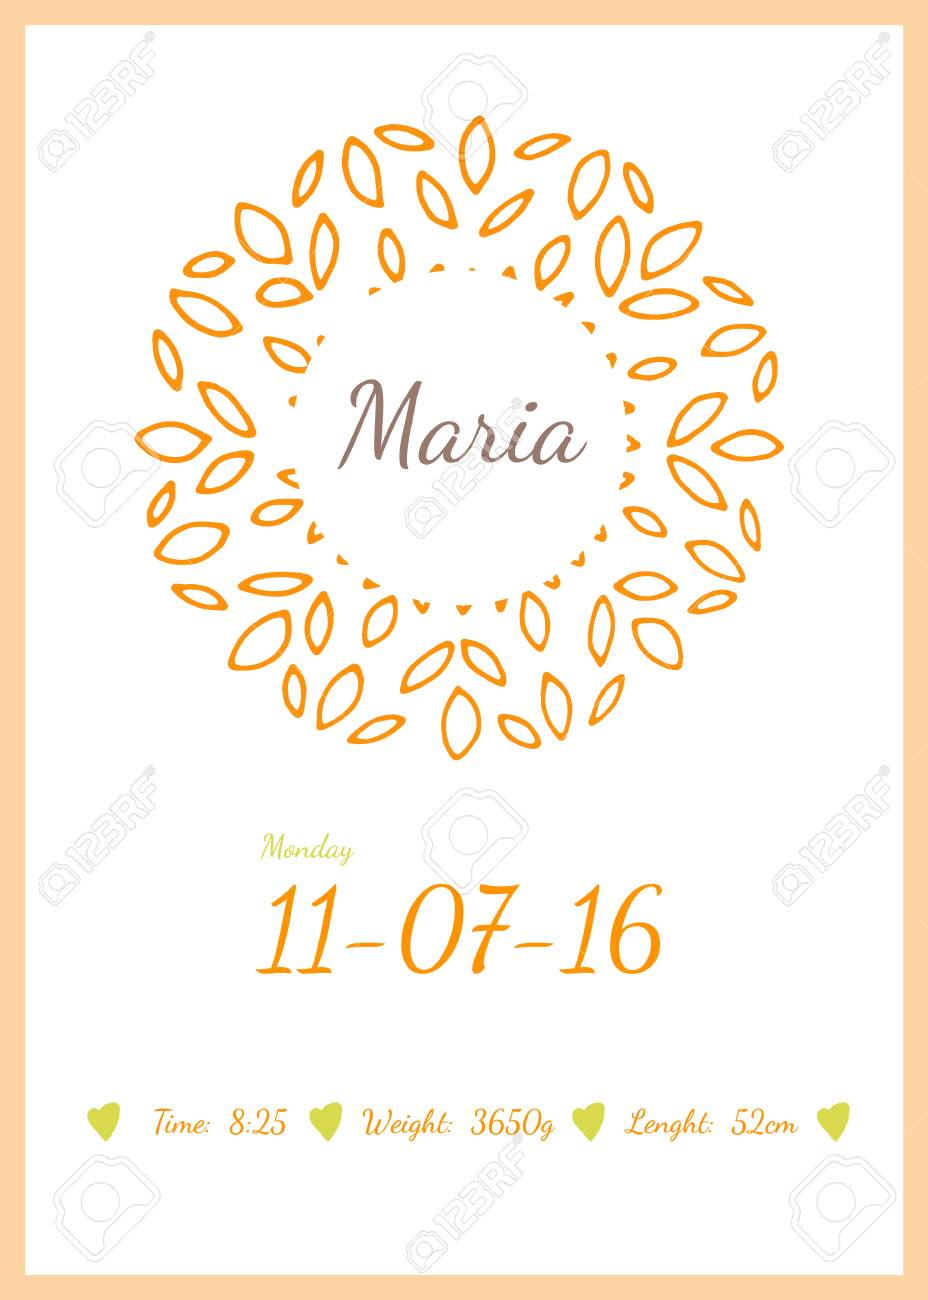 Baby happy birthday card with data name date and weight children baby happy birthday card with data name date and weight children for print m4hsunfo